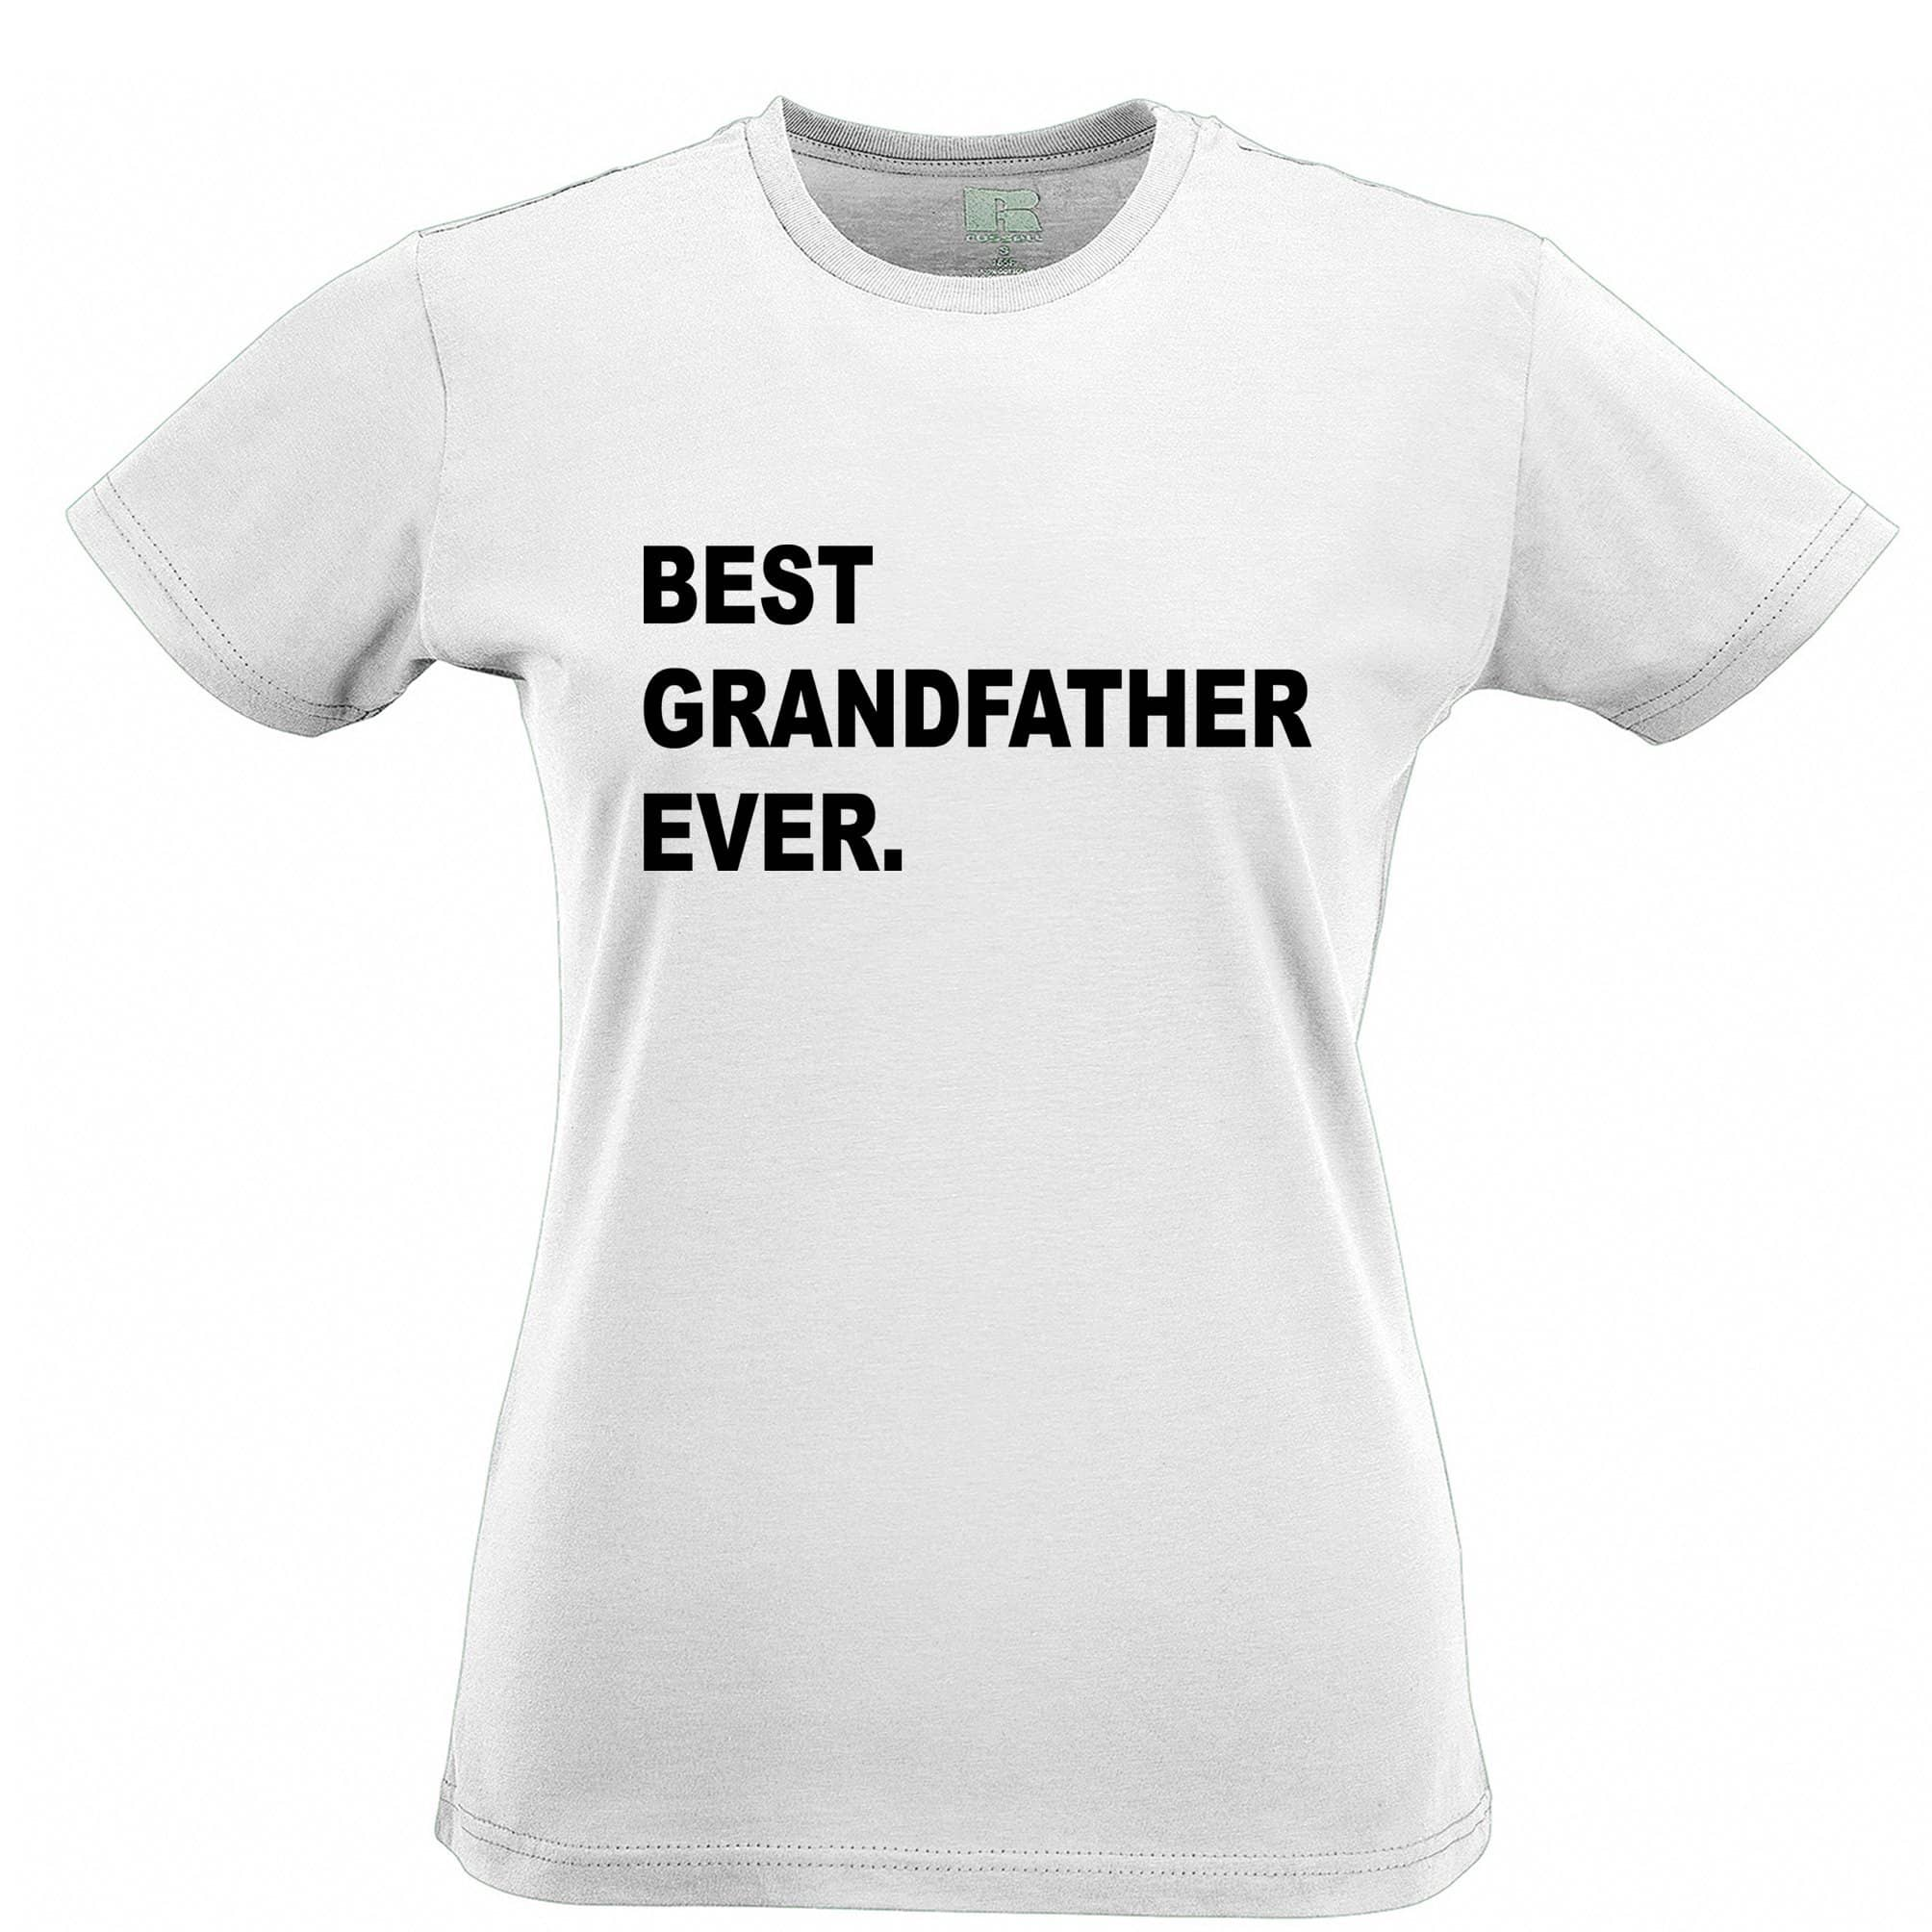 Best Grandfather Ever Womens TShirt Parent Family Slogan